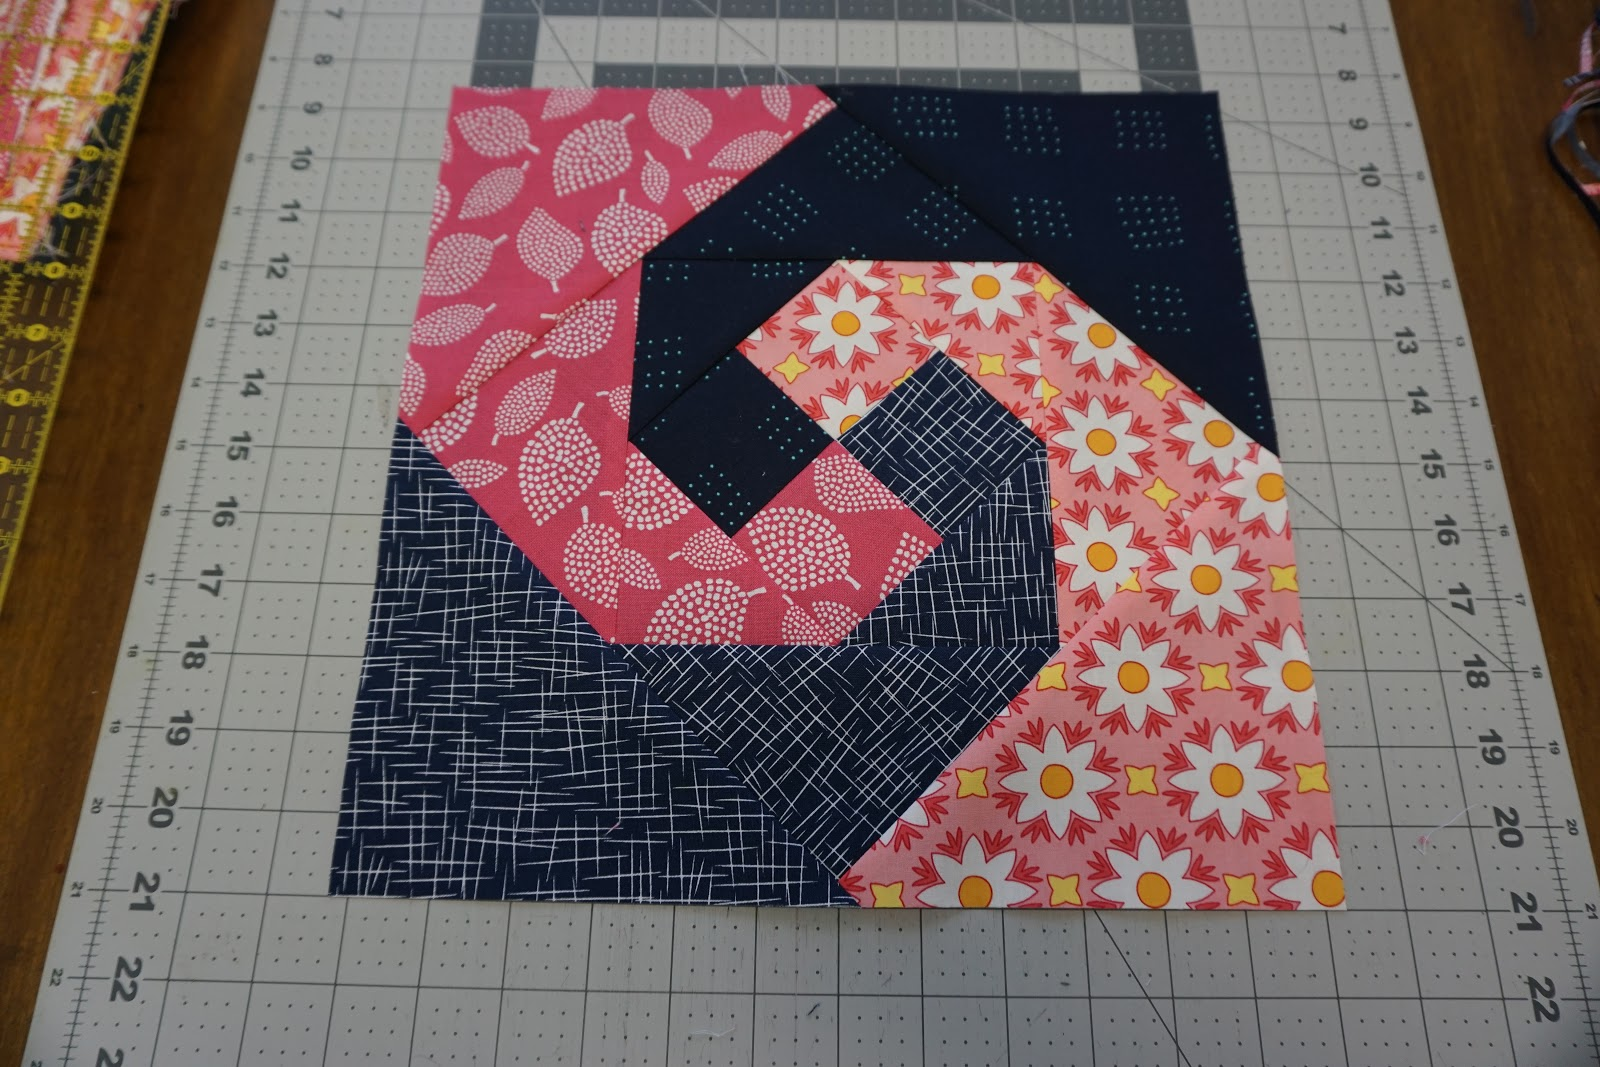 Tracy's Bits N Pieces : bits n pieces quilt patterns - Adamdwight.com